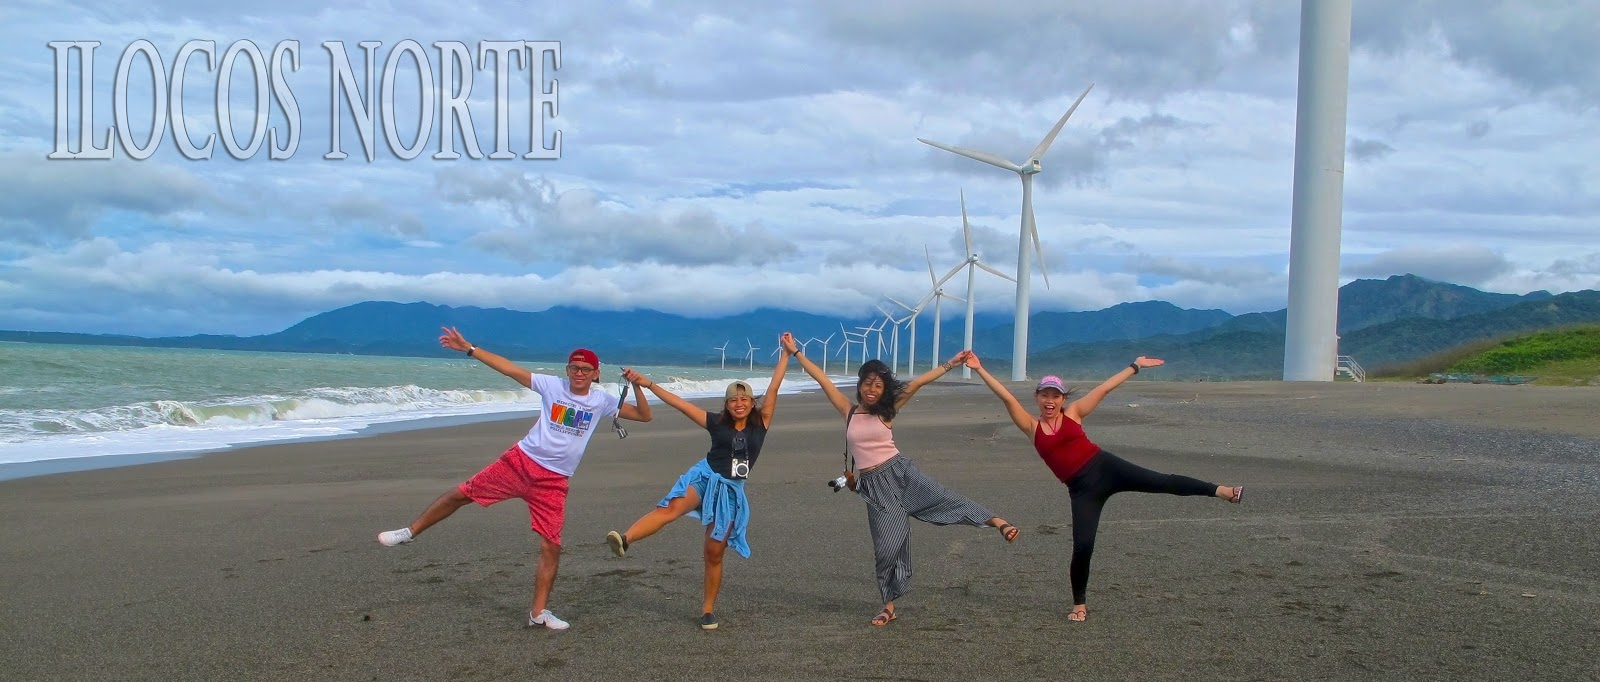 This was taken in Ilocos Norte